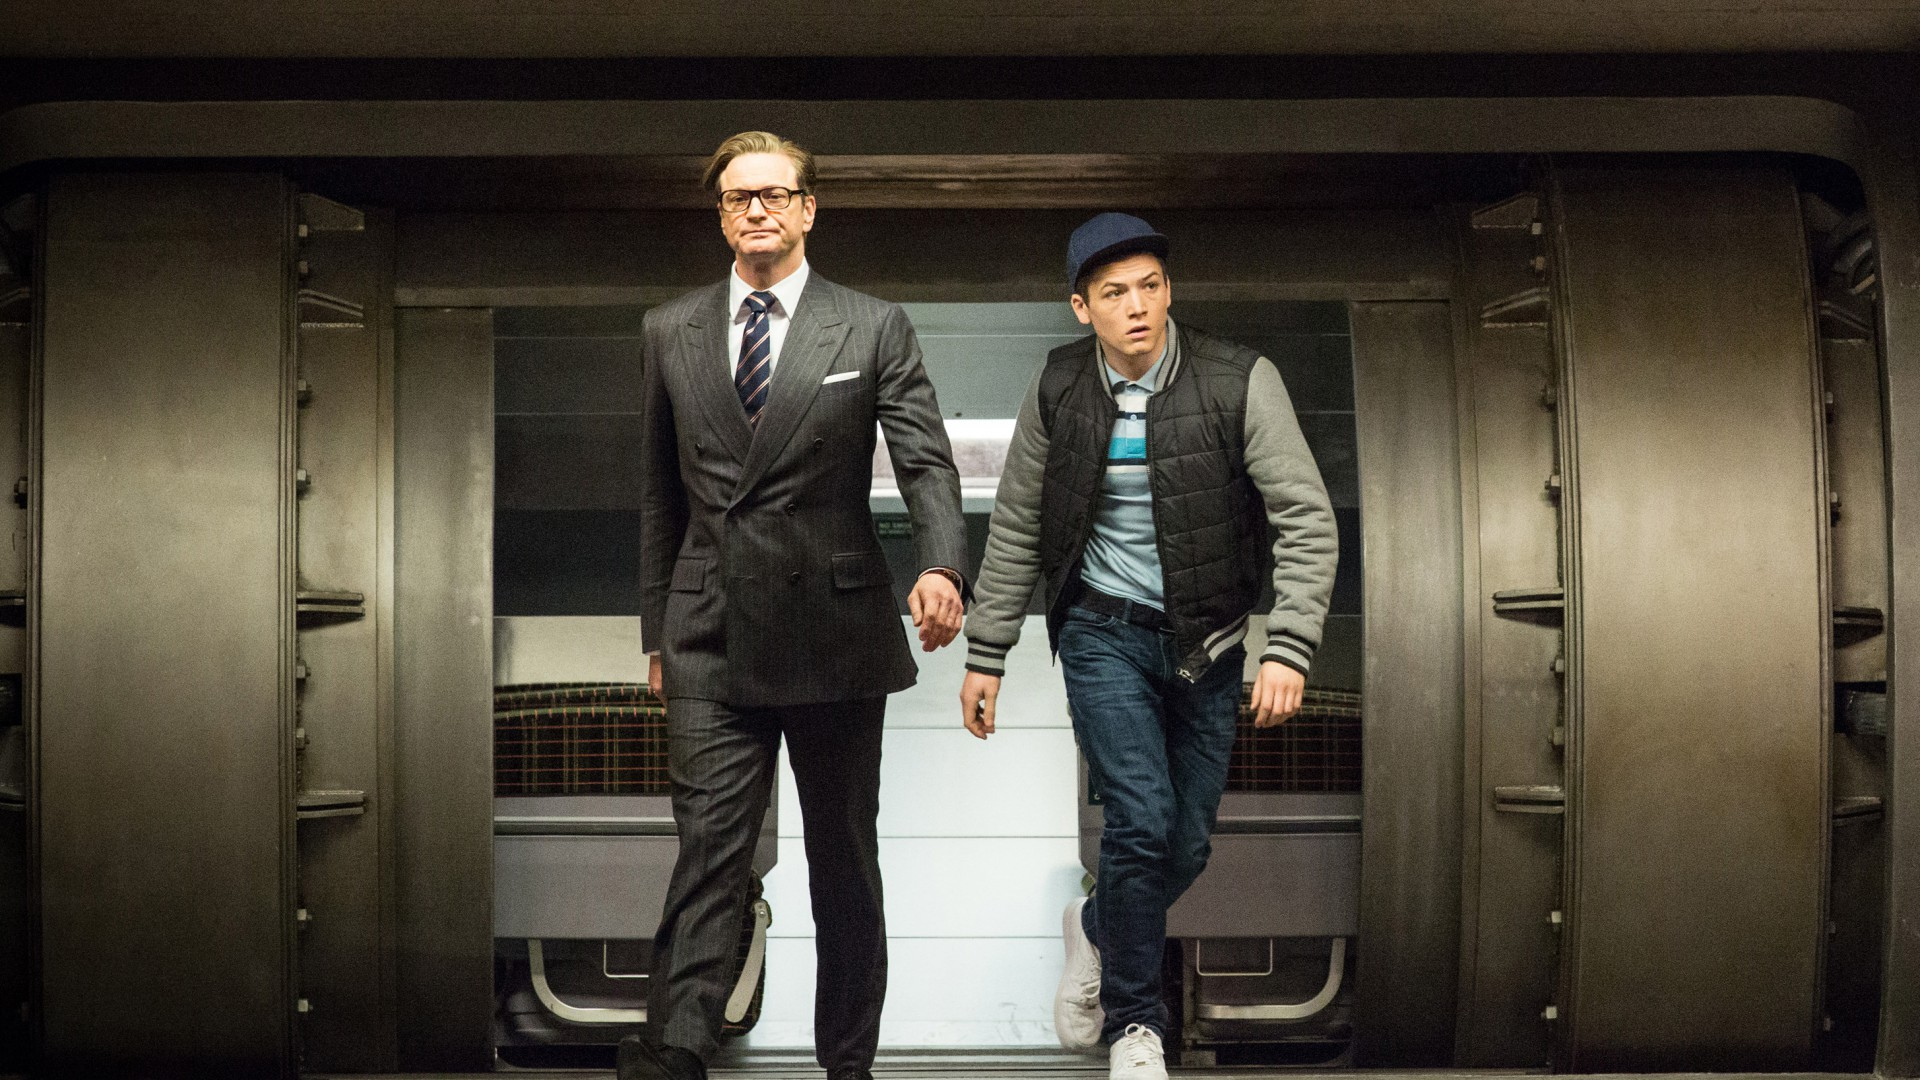 Colin Firth, Taron Egerton, Kingsman, Best Movies of 2015, crime (horizontal)